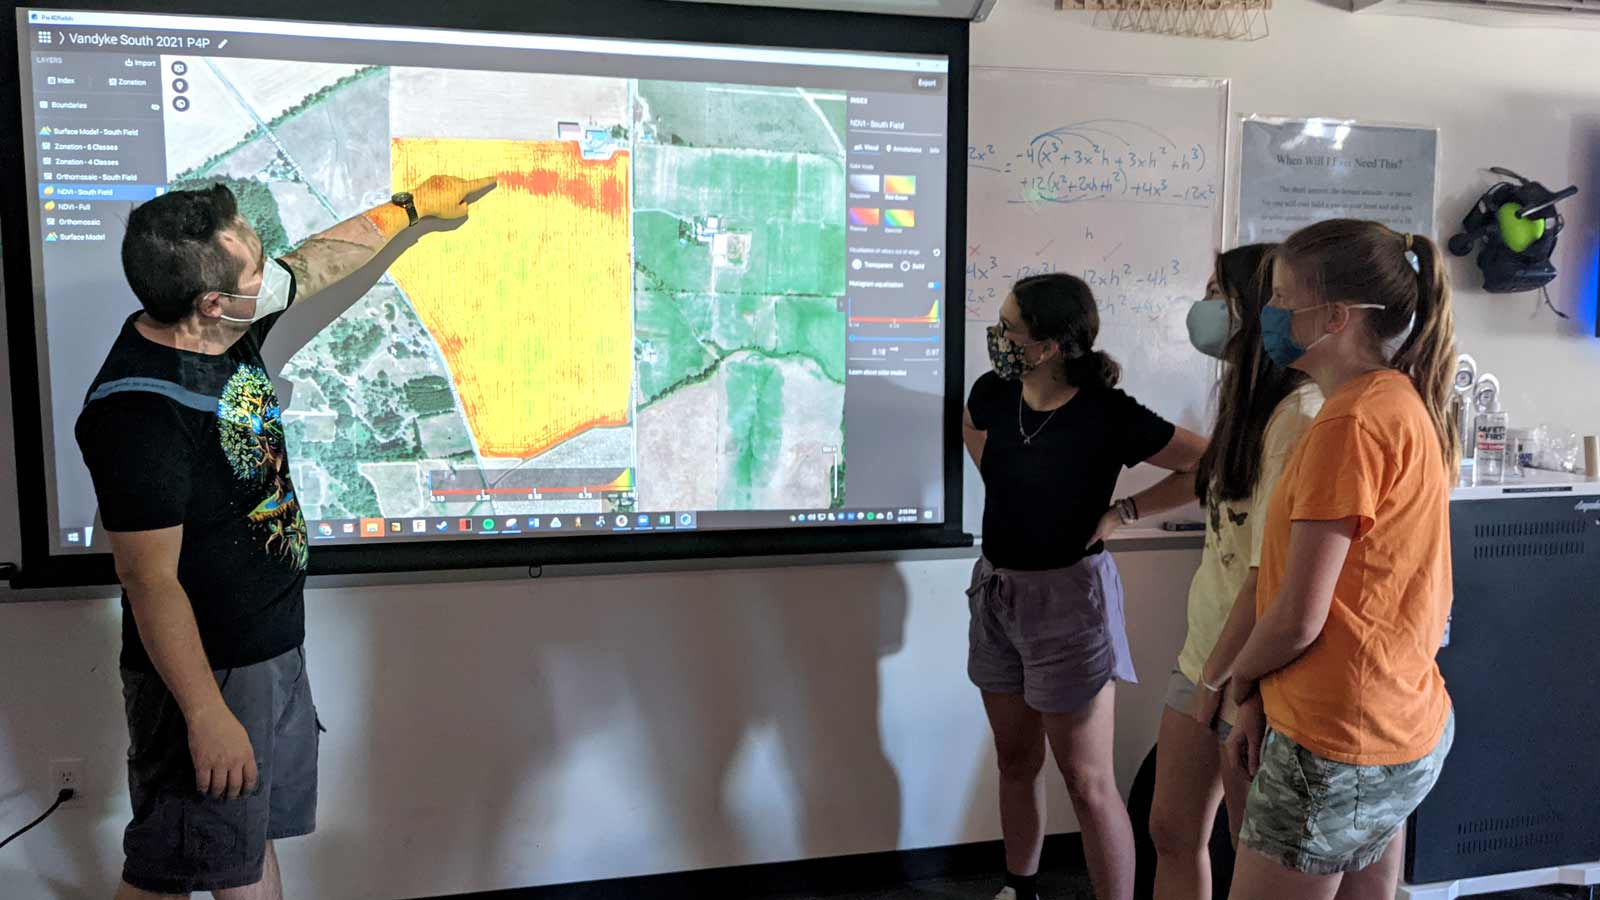 Yamhill Carlton students looking at the agriculture patterns on the NDVI map in PIX4Dfields